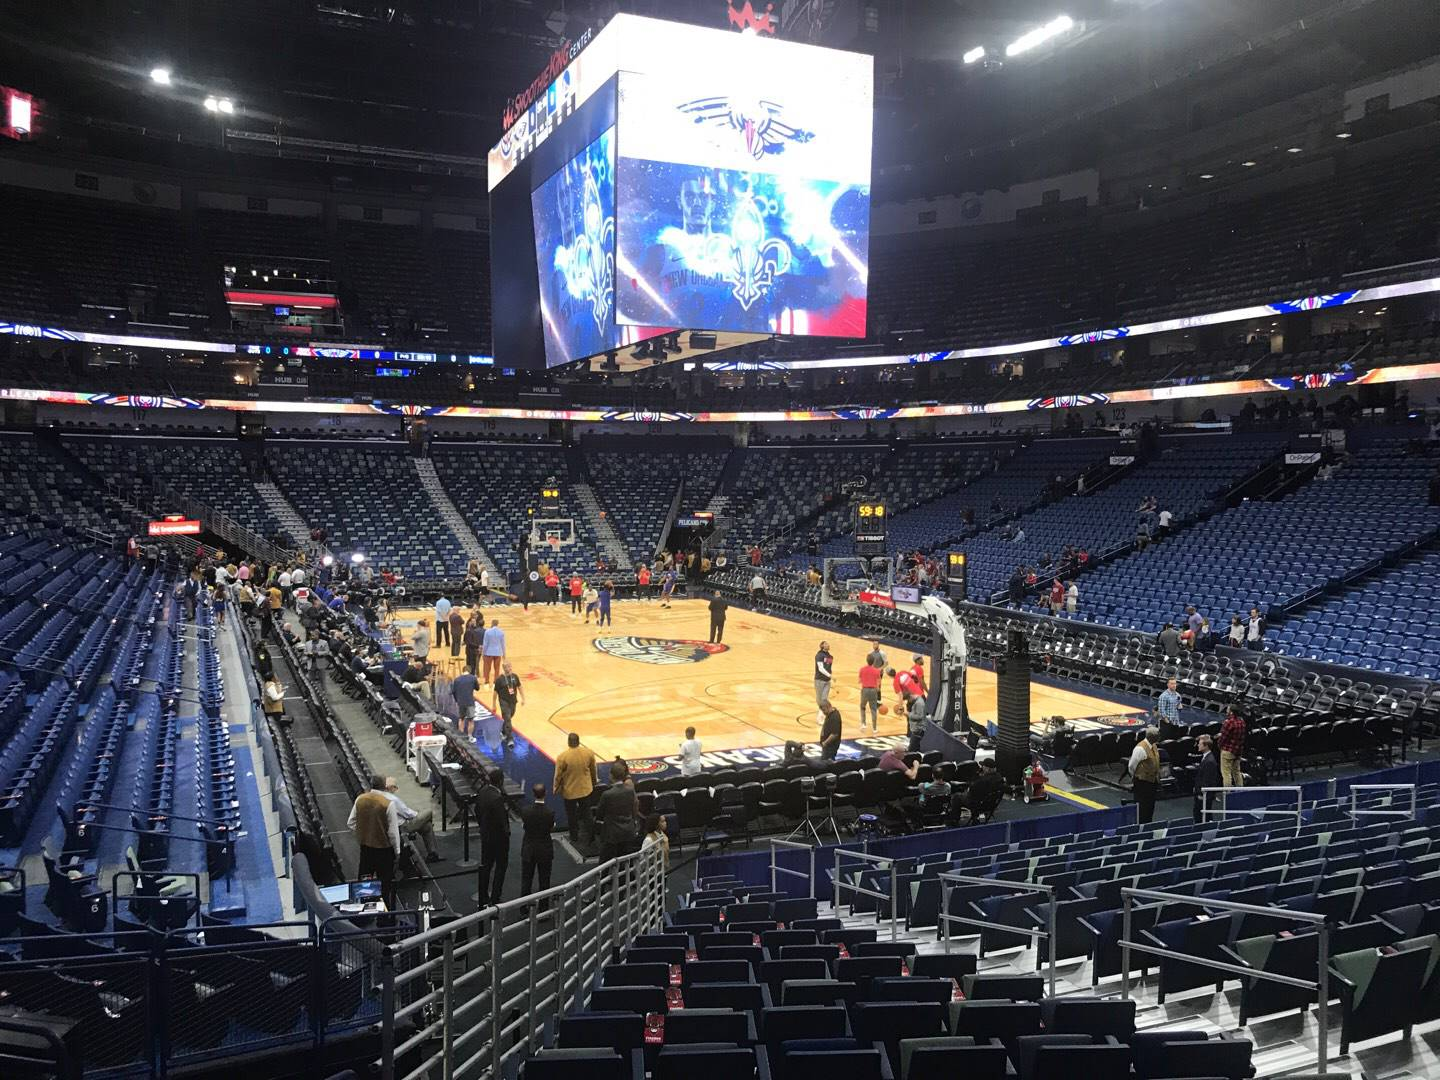 Smoothie King Center Section 108 Row 18 Seat 8